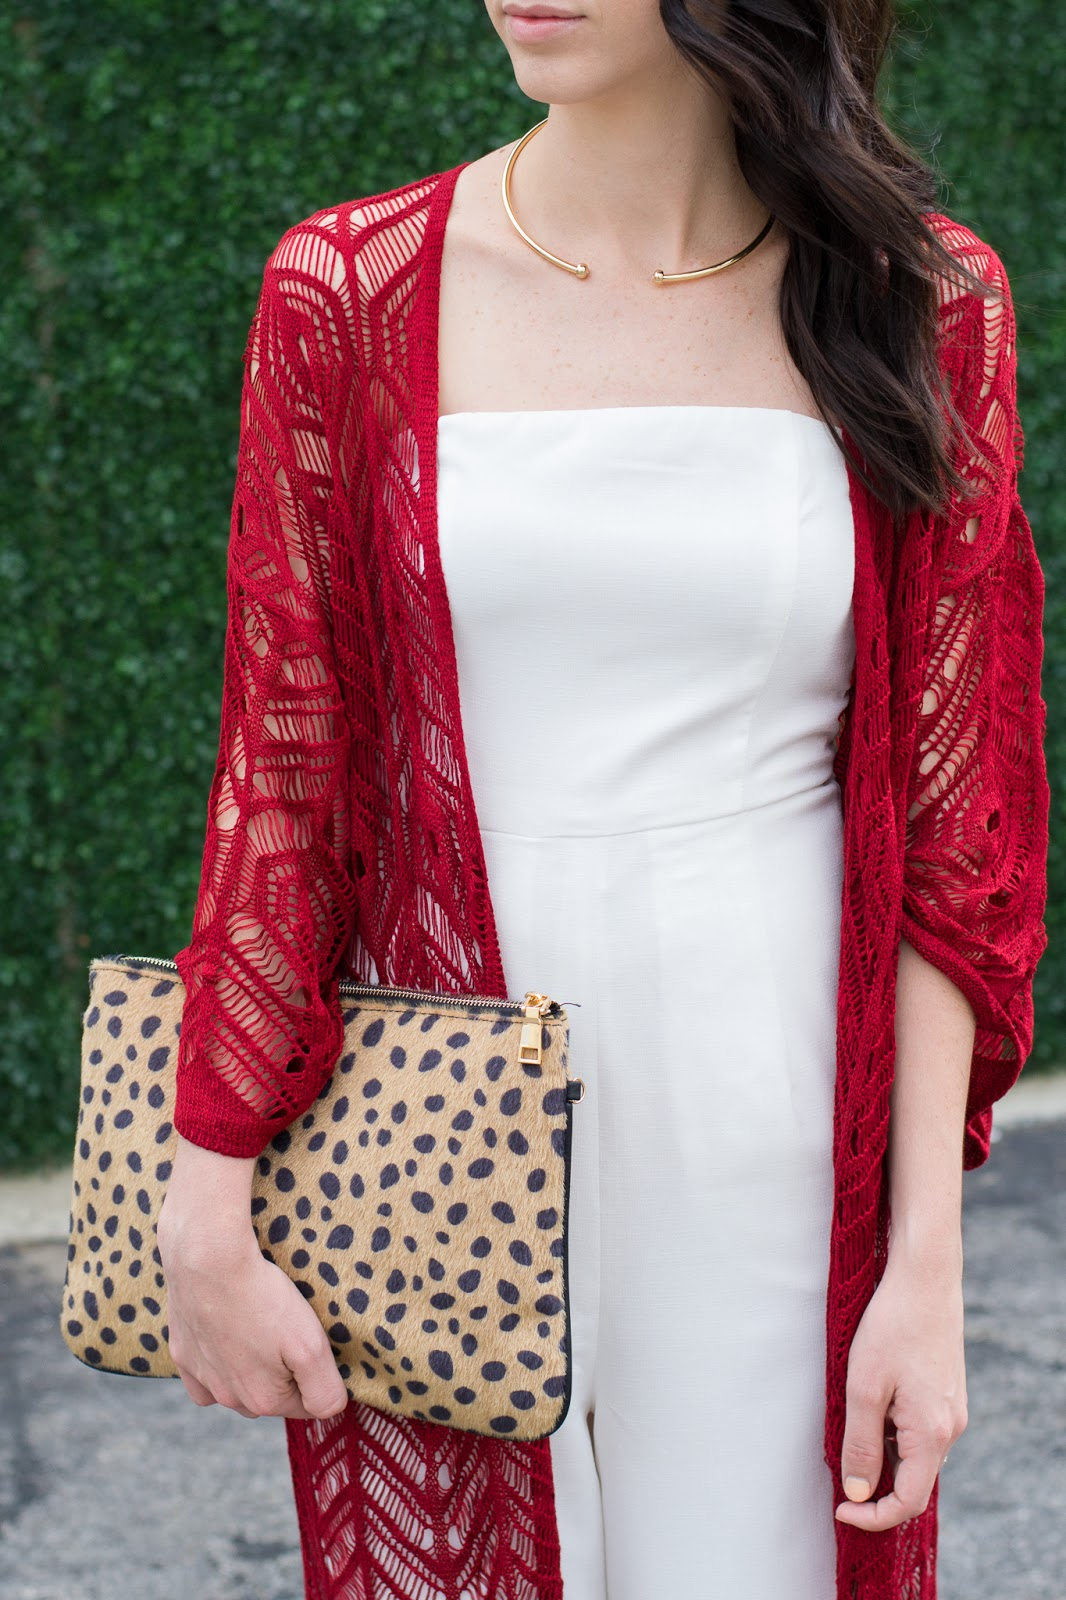 Boho chic style with minimal gold choker and leopard clutch